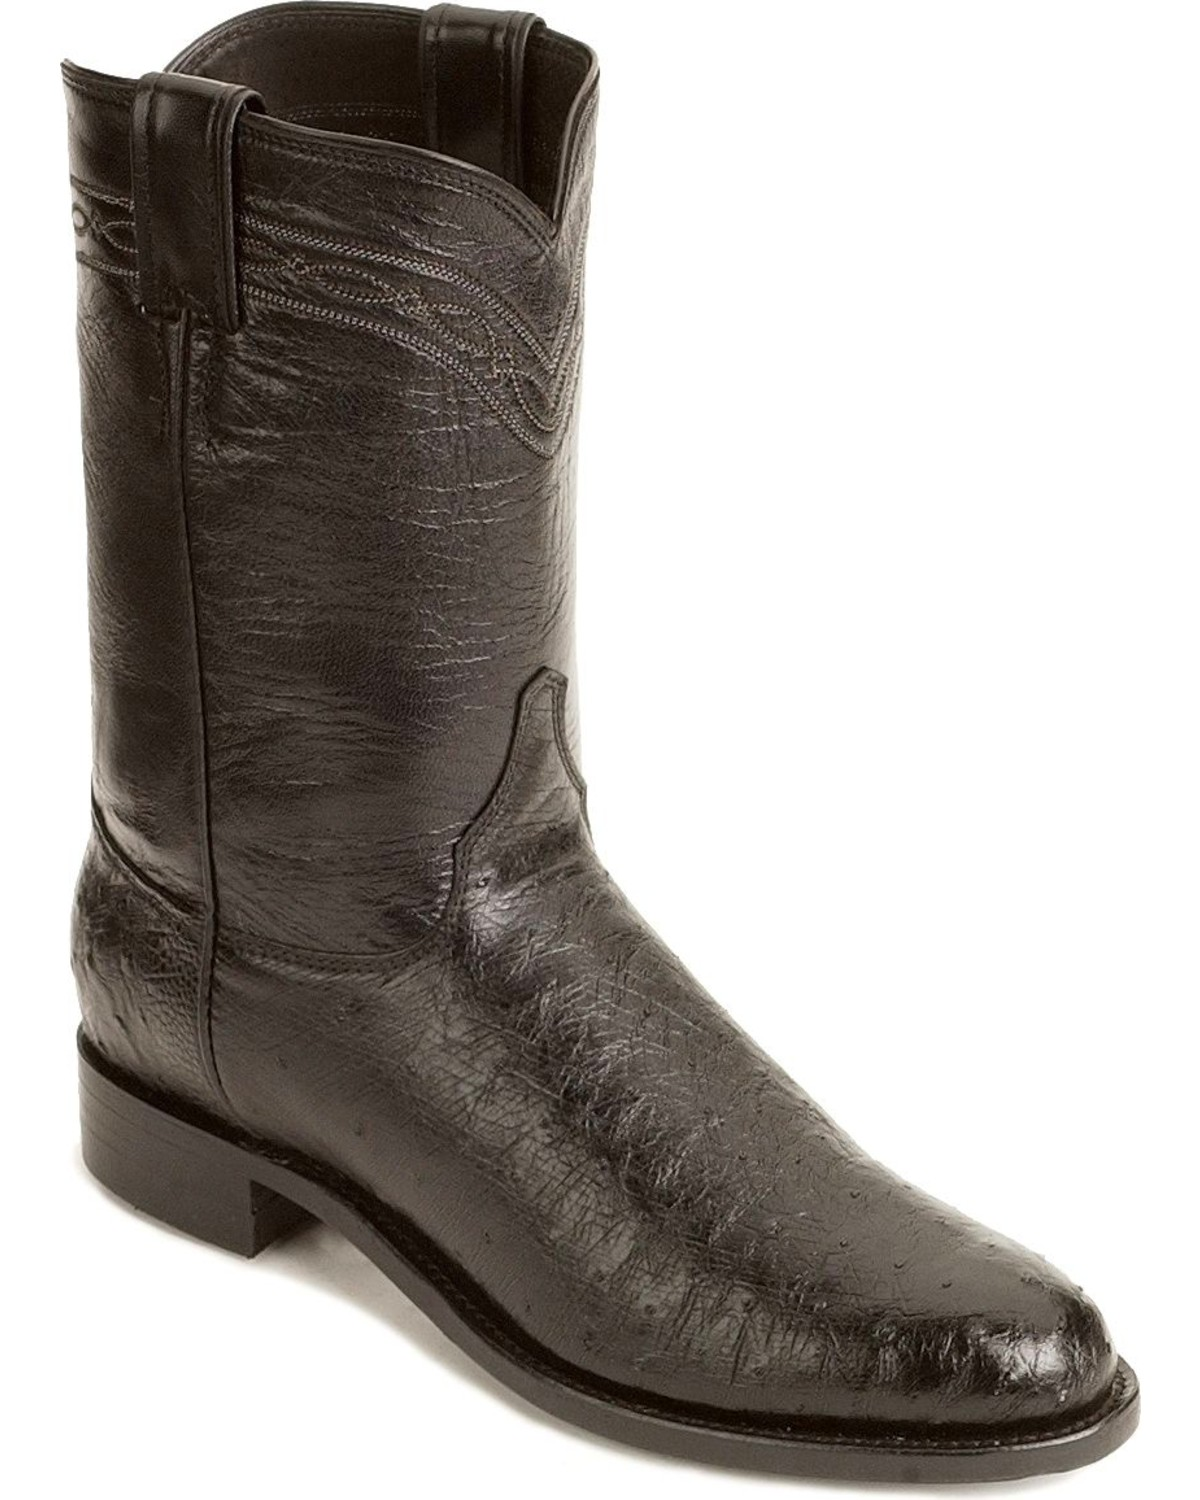 Men's Dress Boots - Sheplers